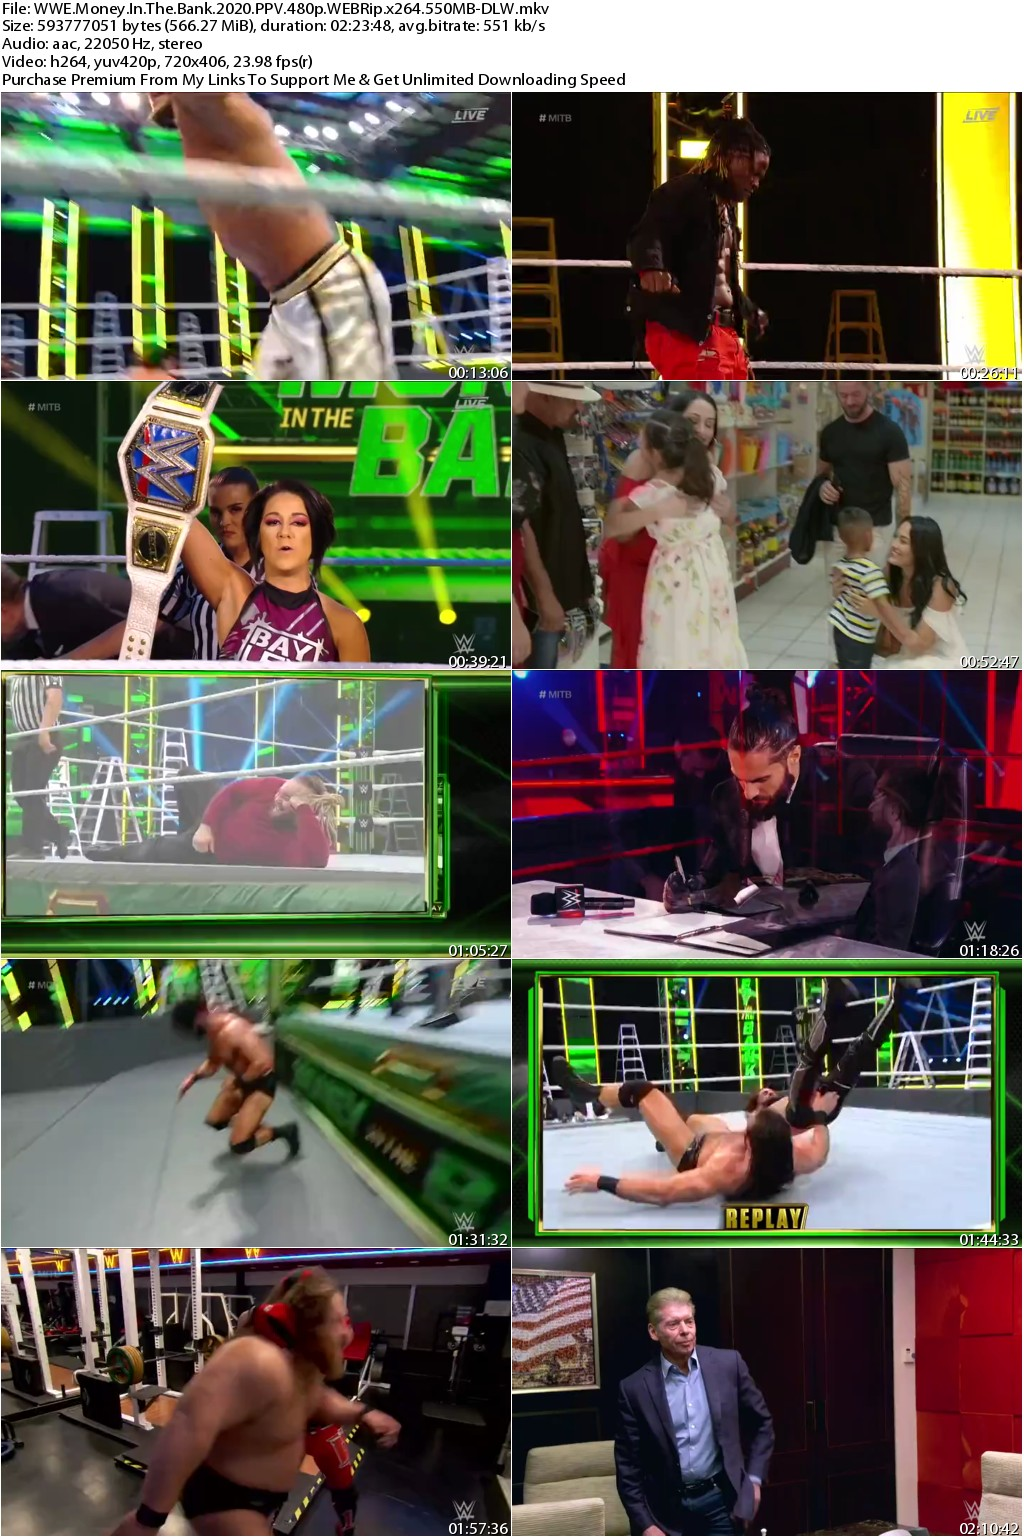 WWE Money In The Bank 2020 PPV 480p WEBRip x264 550MB-DLW